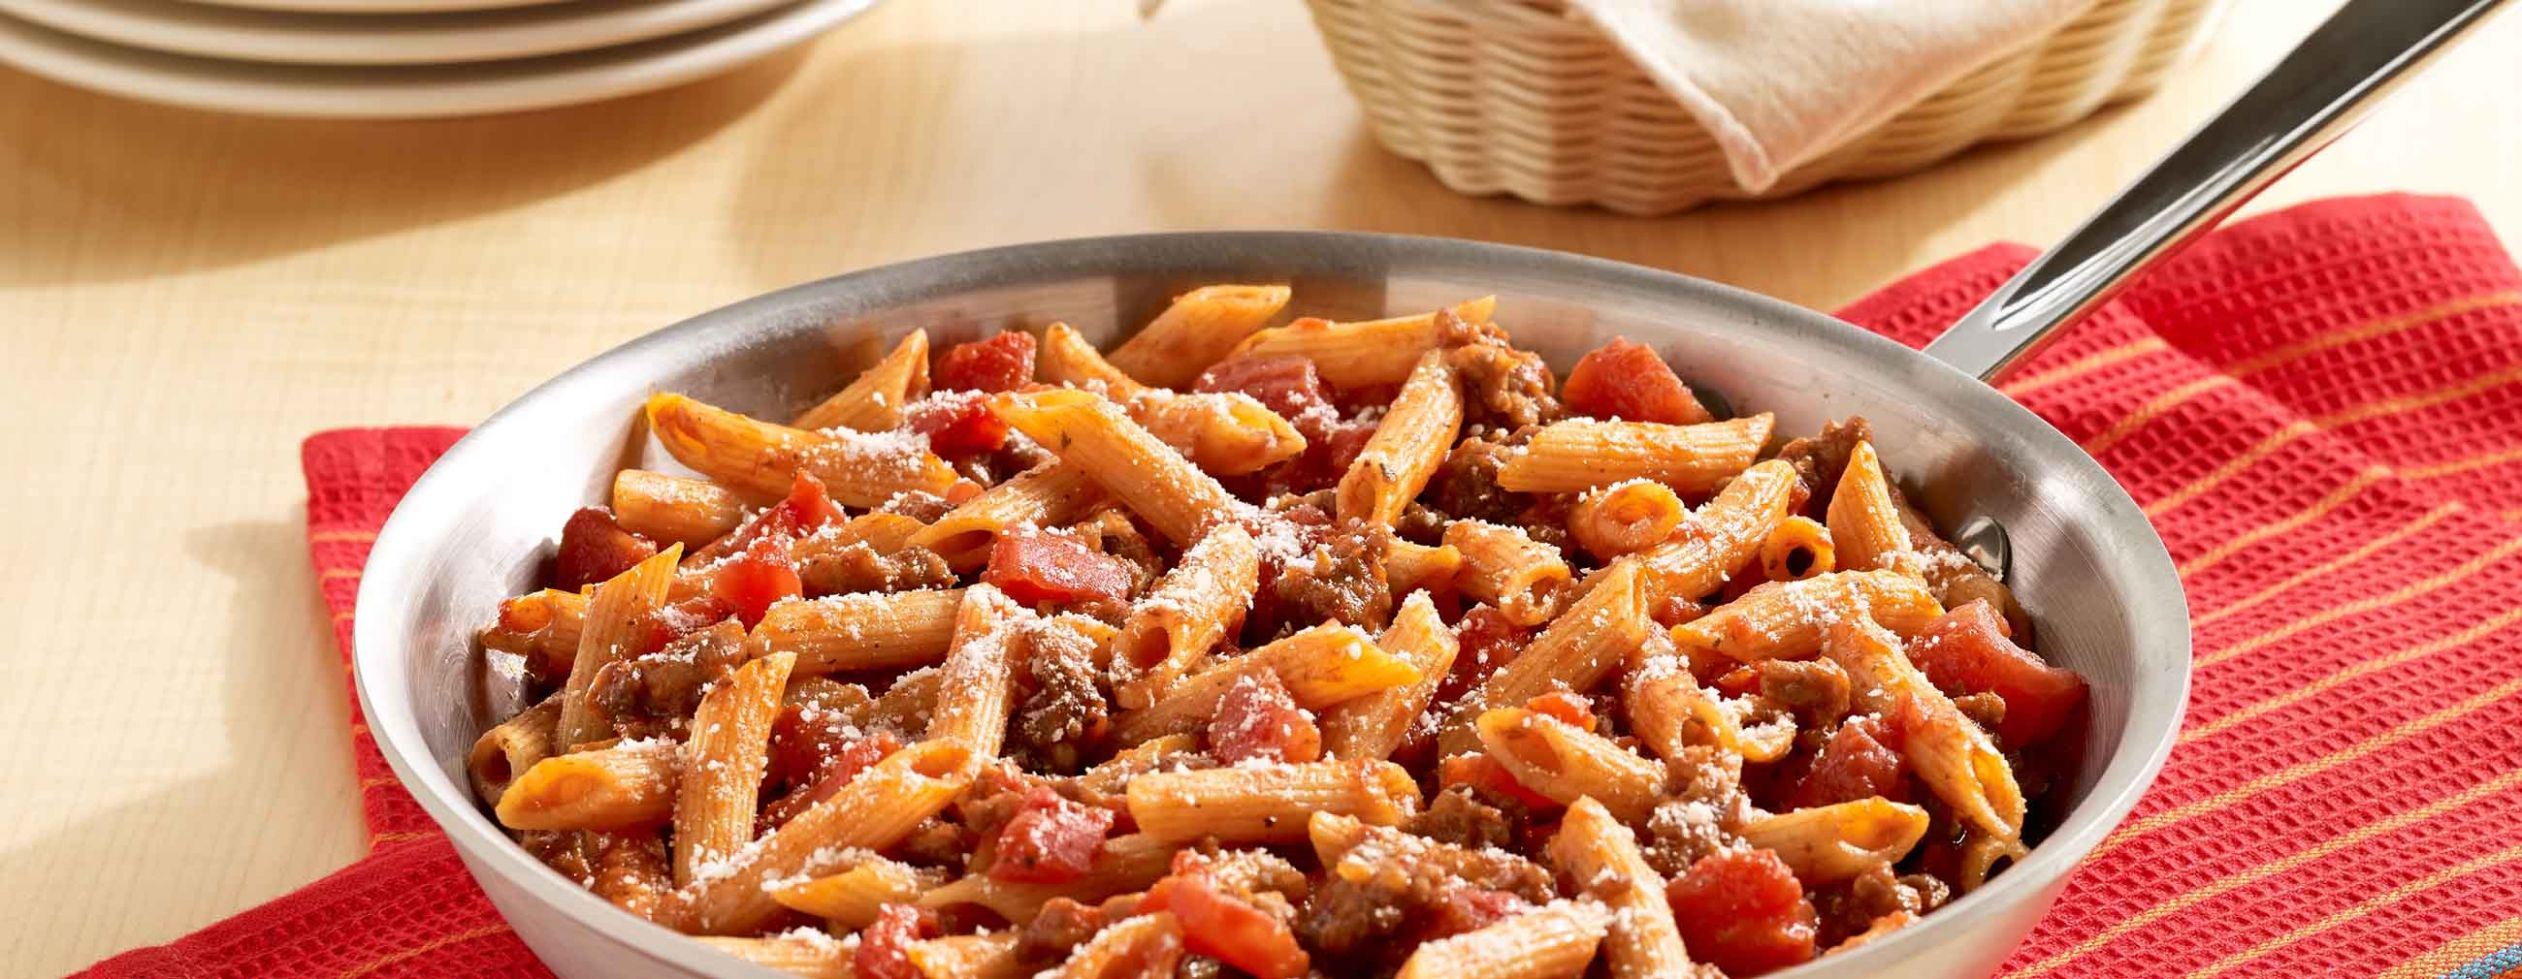 One-Skillet Italian Sausage Pasta - Recipes Pasta With Sausage